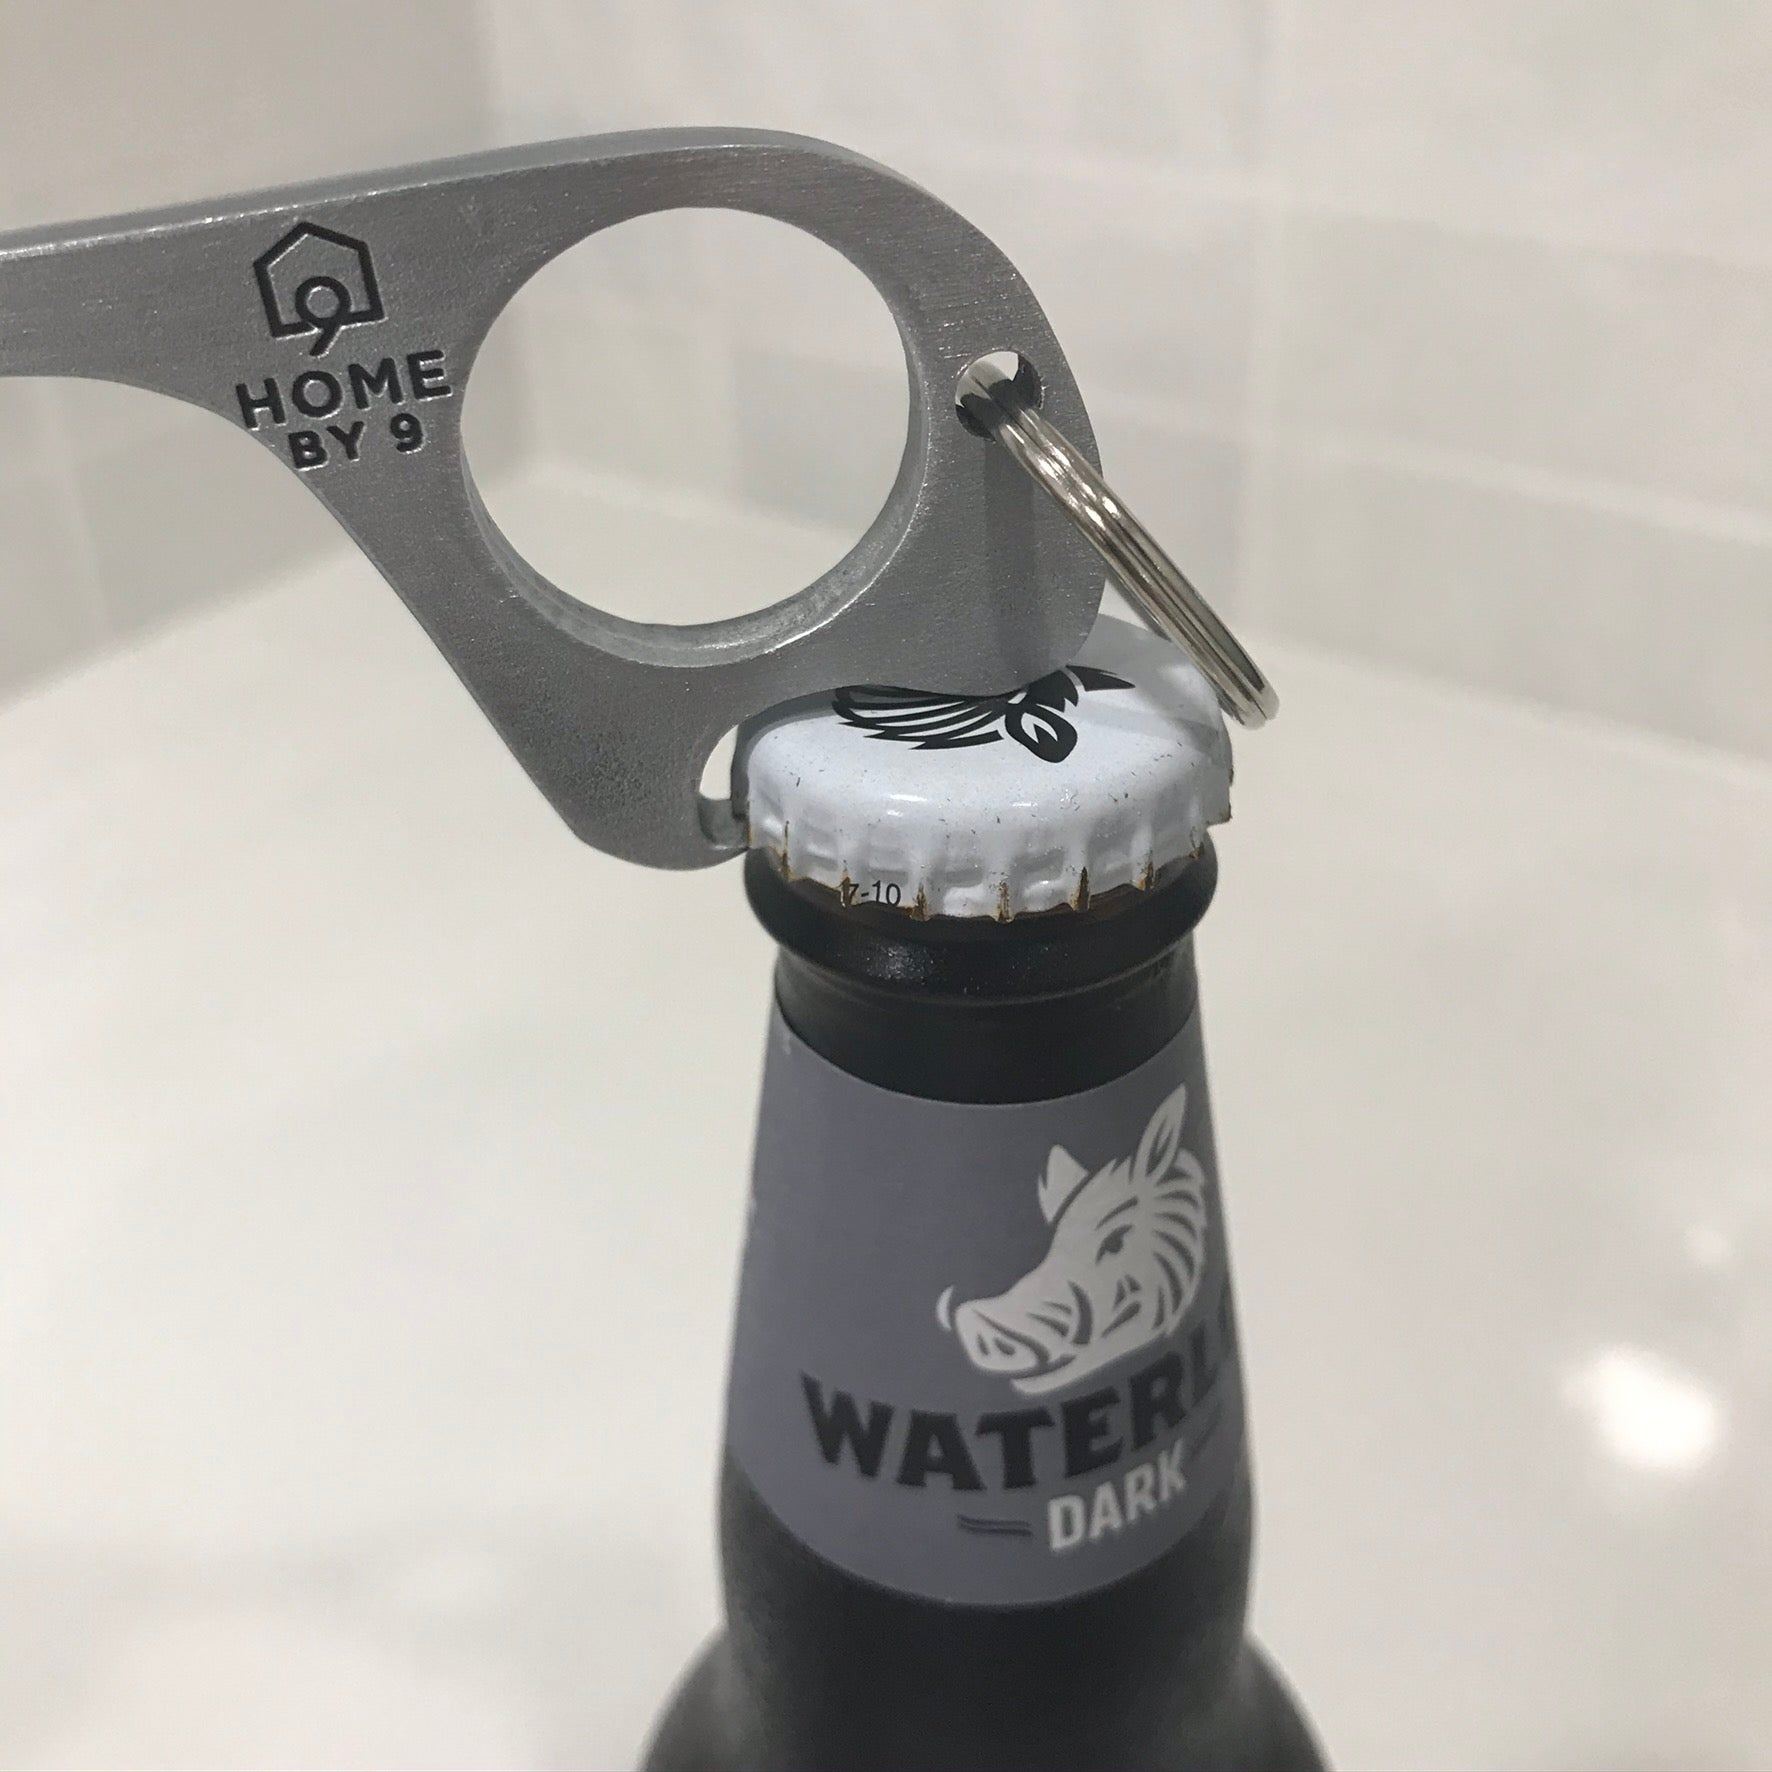 The No-Touch Tool with Beer Opener - Home By Nine